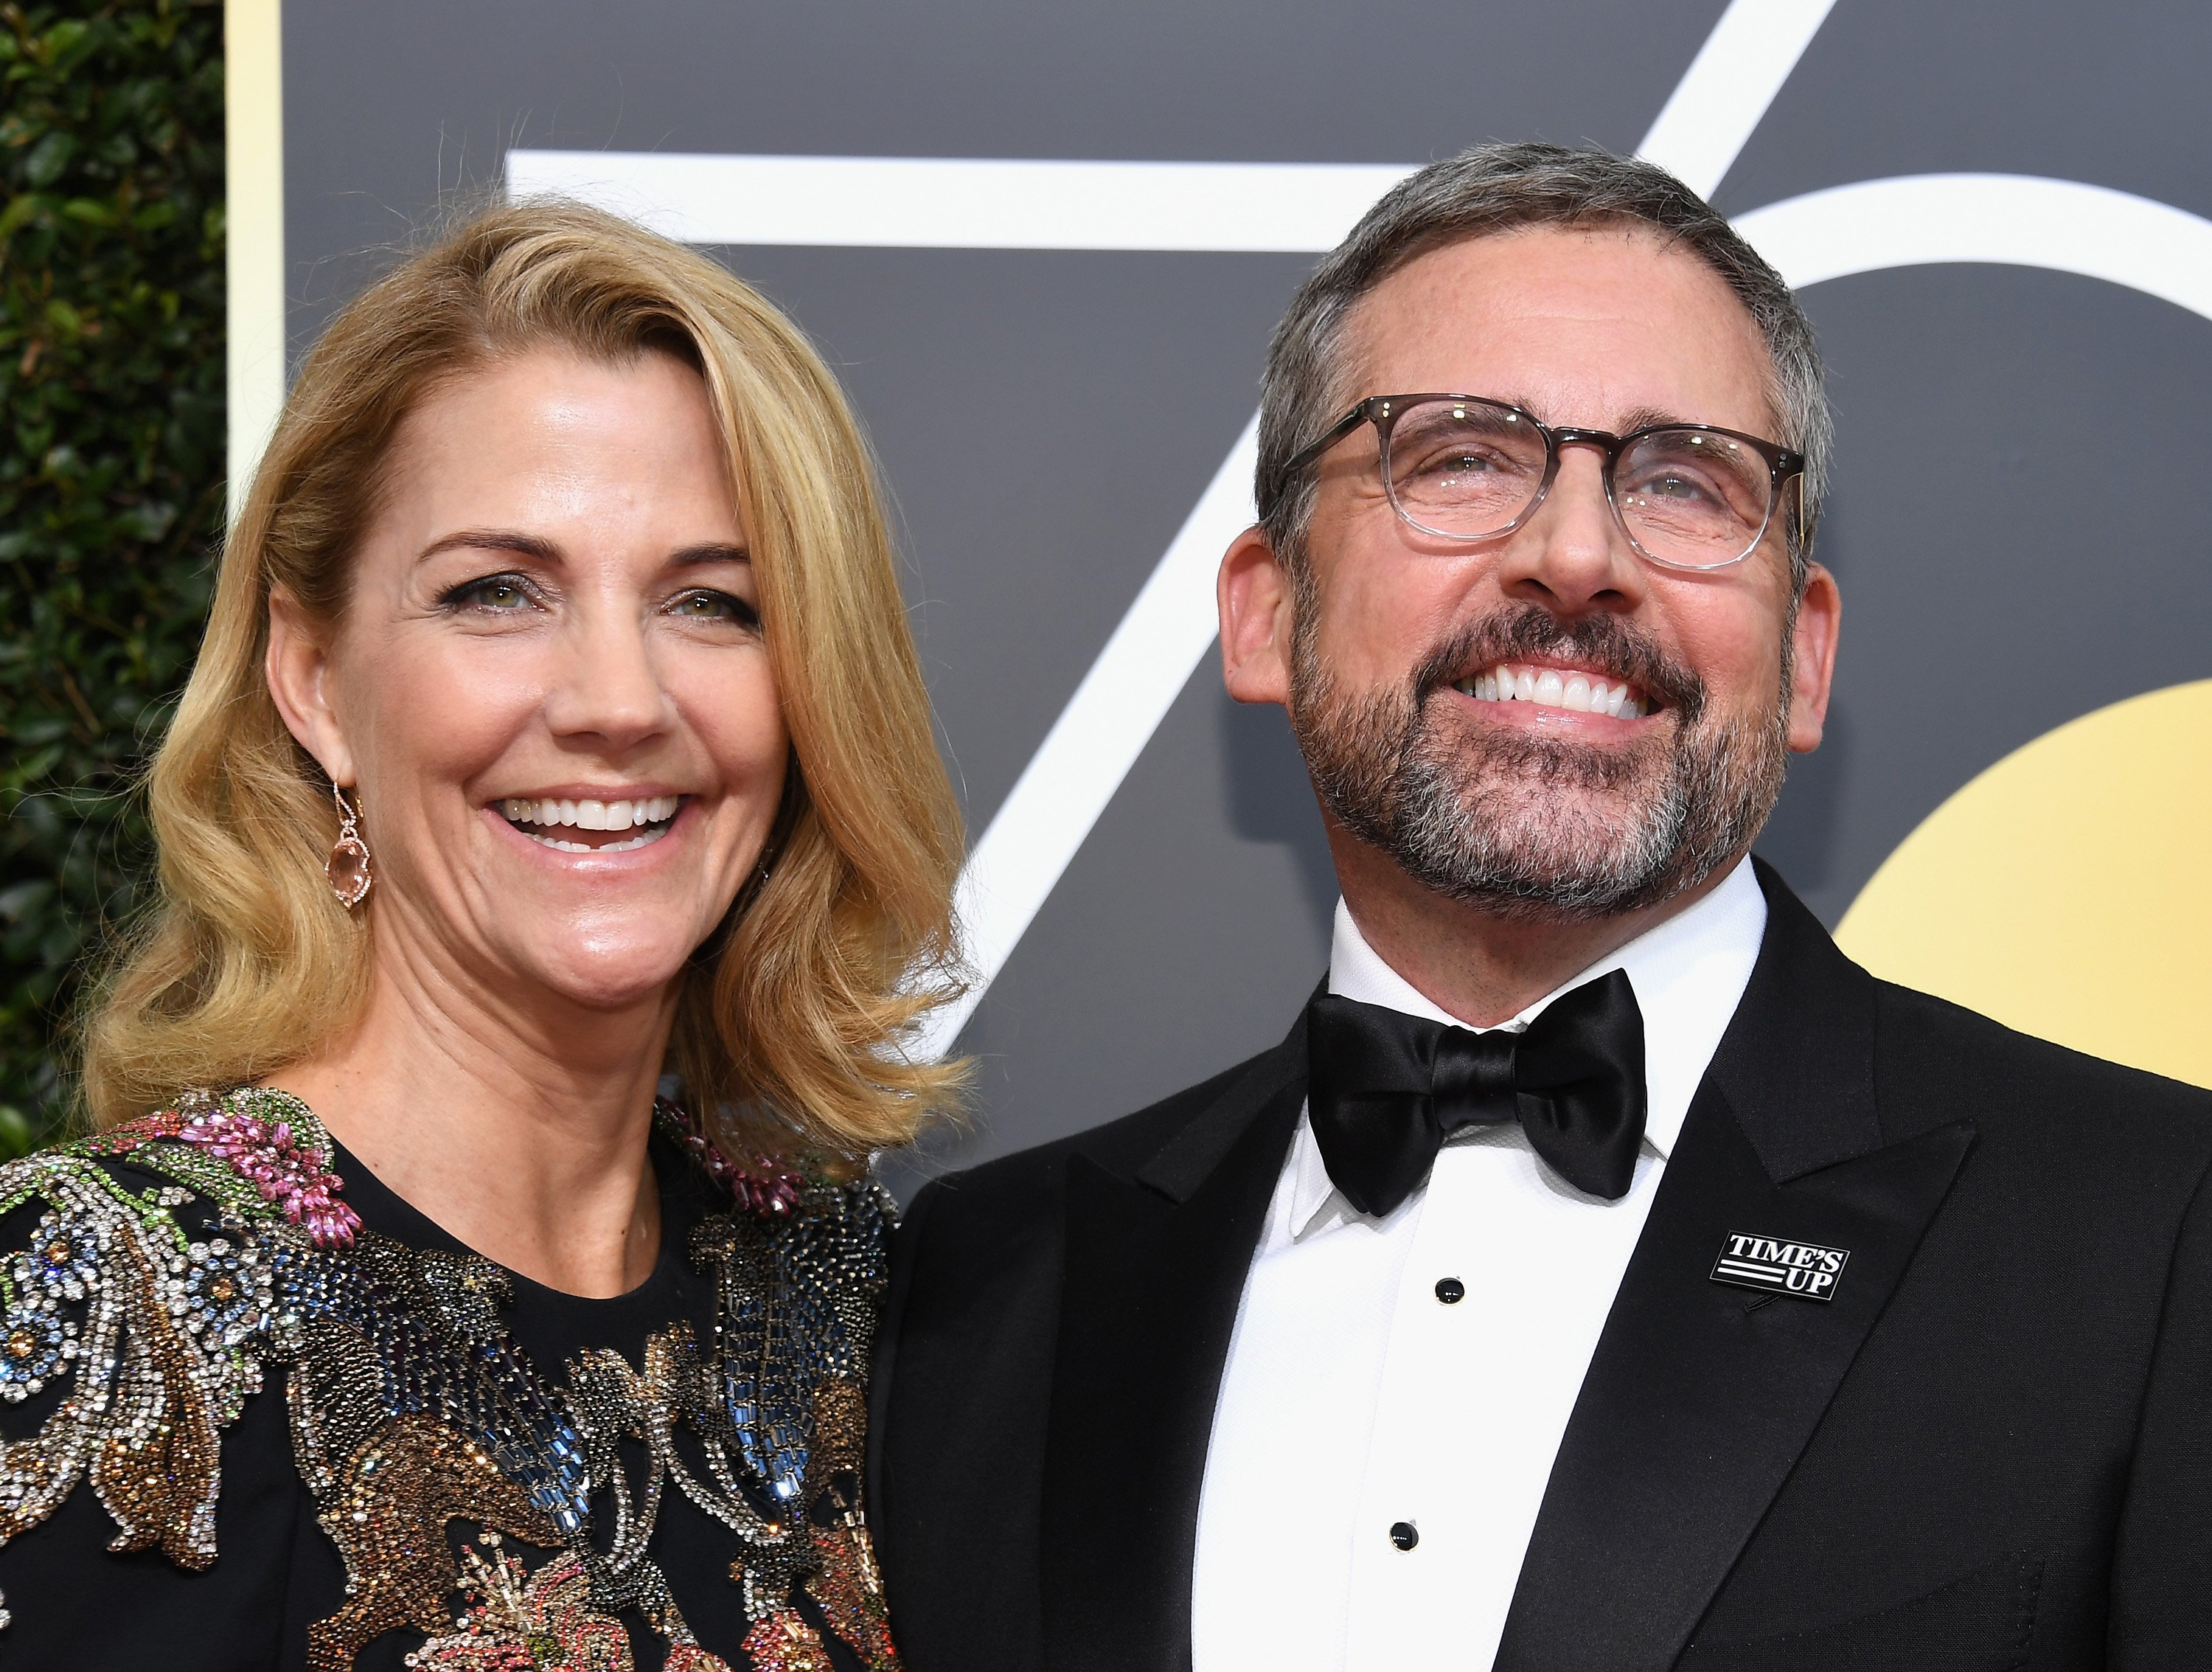 Nancy Carell and Steve Carell arrive to the 75th Annual Golden Globe Awards held at the Beverly Hilton Hotel on January 7, 2018. | Photo: GettyImages